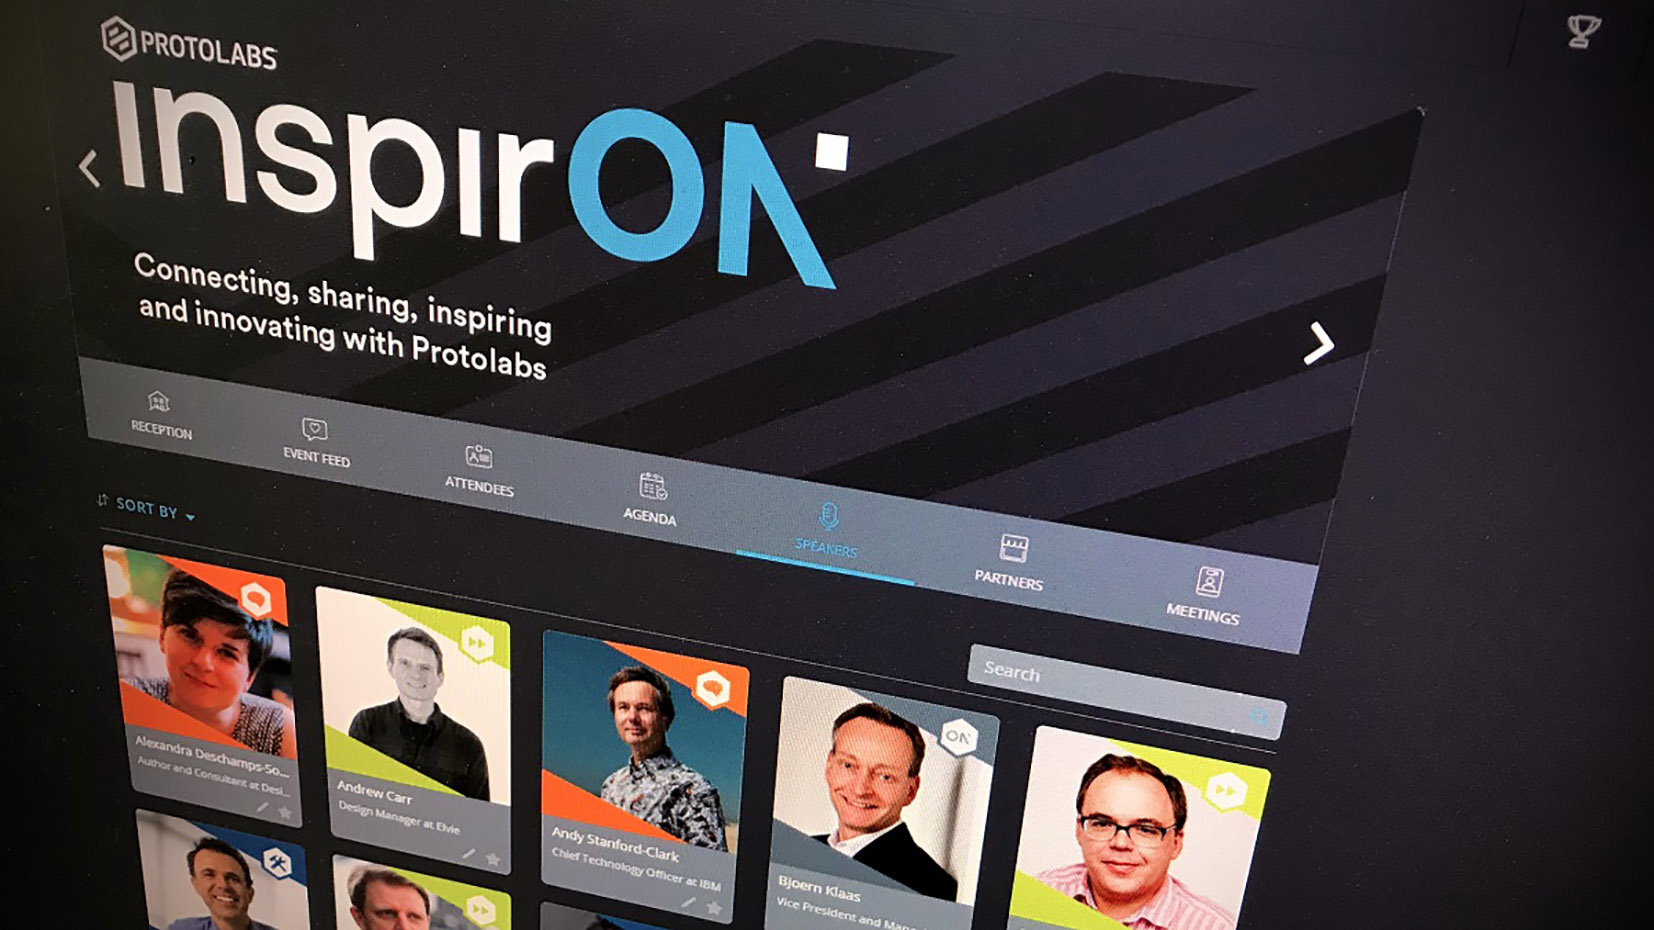 All of the speakers taking part in the InspirON series can be found on the Protolabs website. Photo via Protolabs.